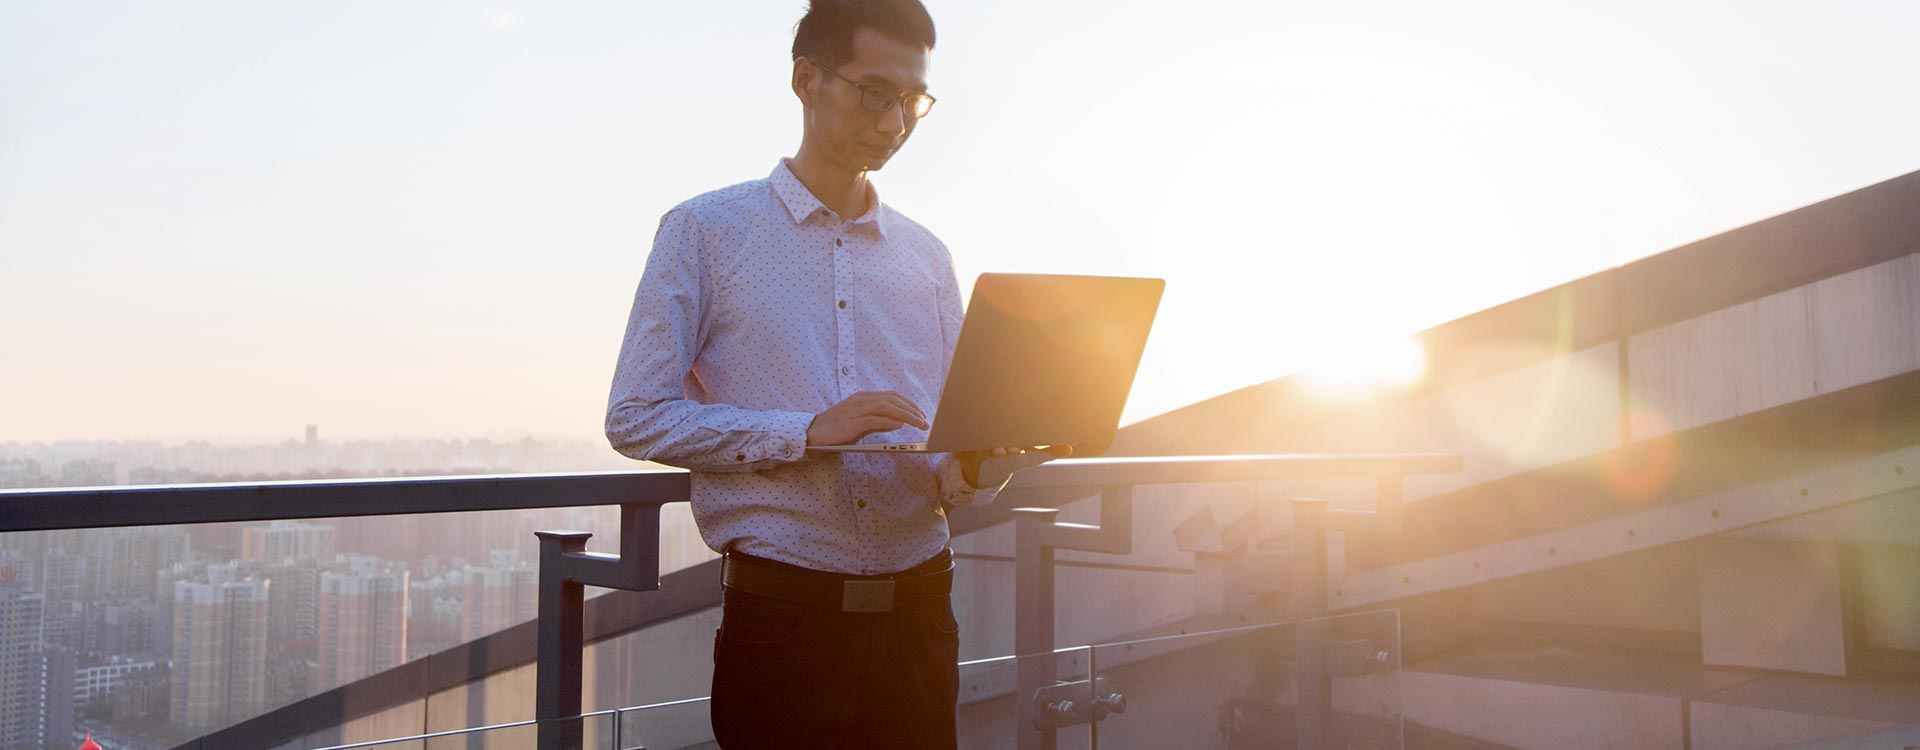 Male Professional Working at Laptop PC on Rooftop